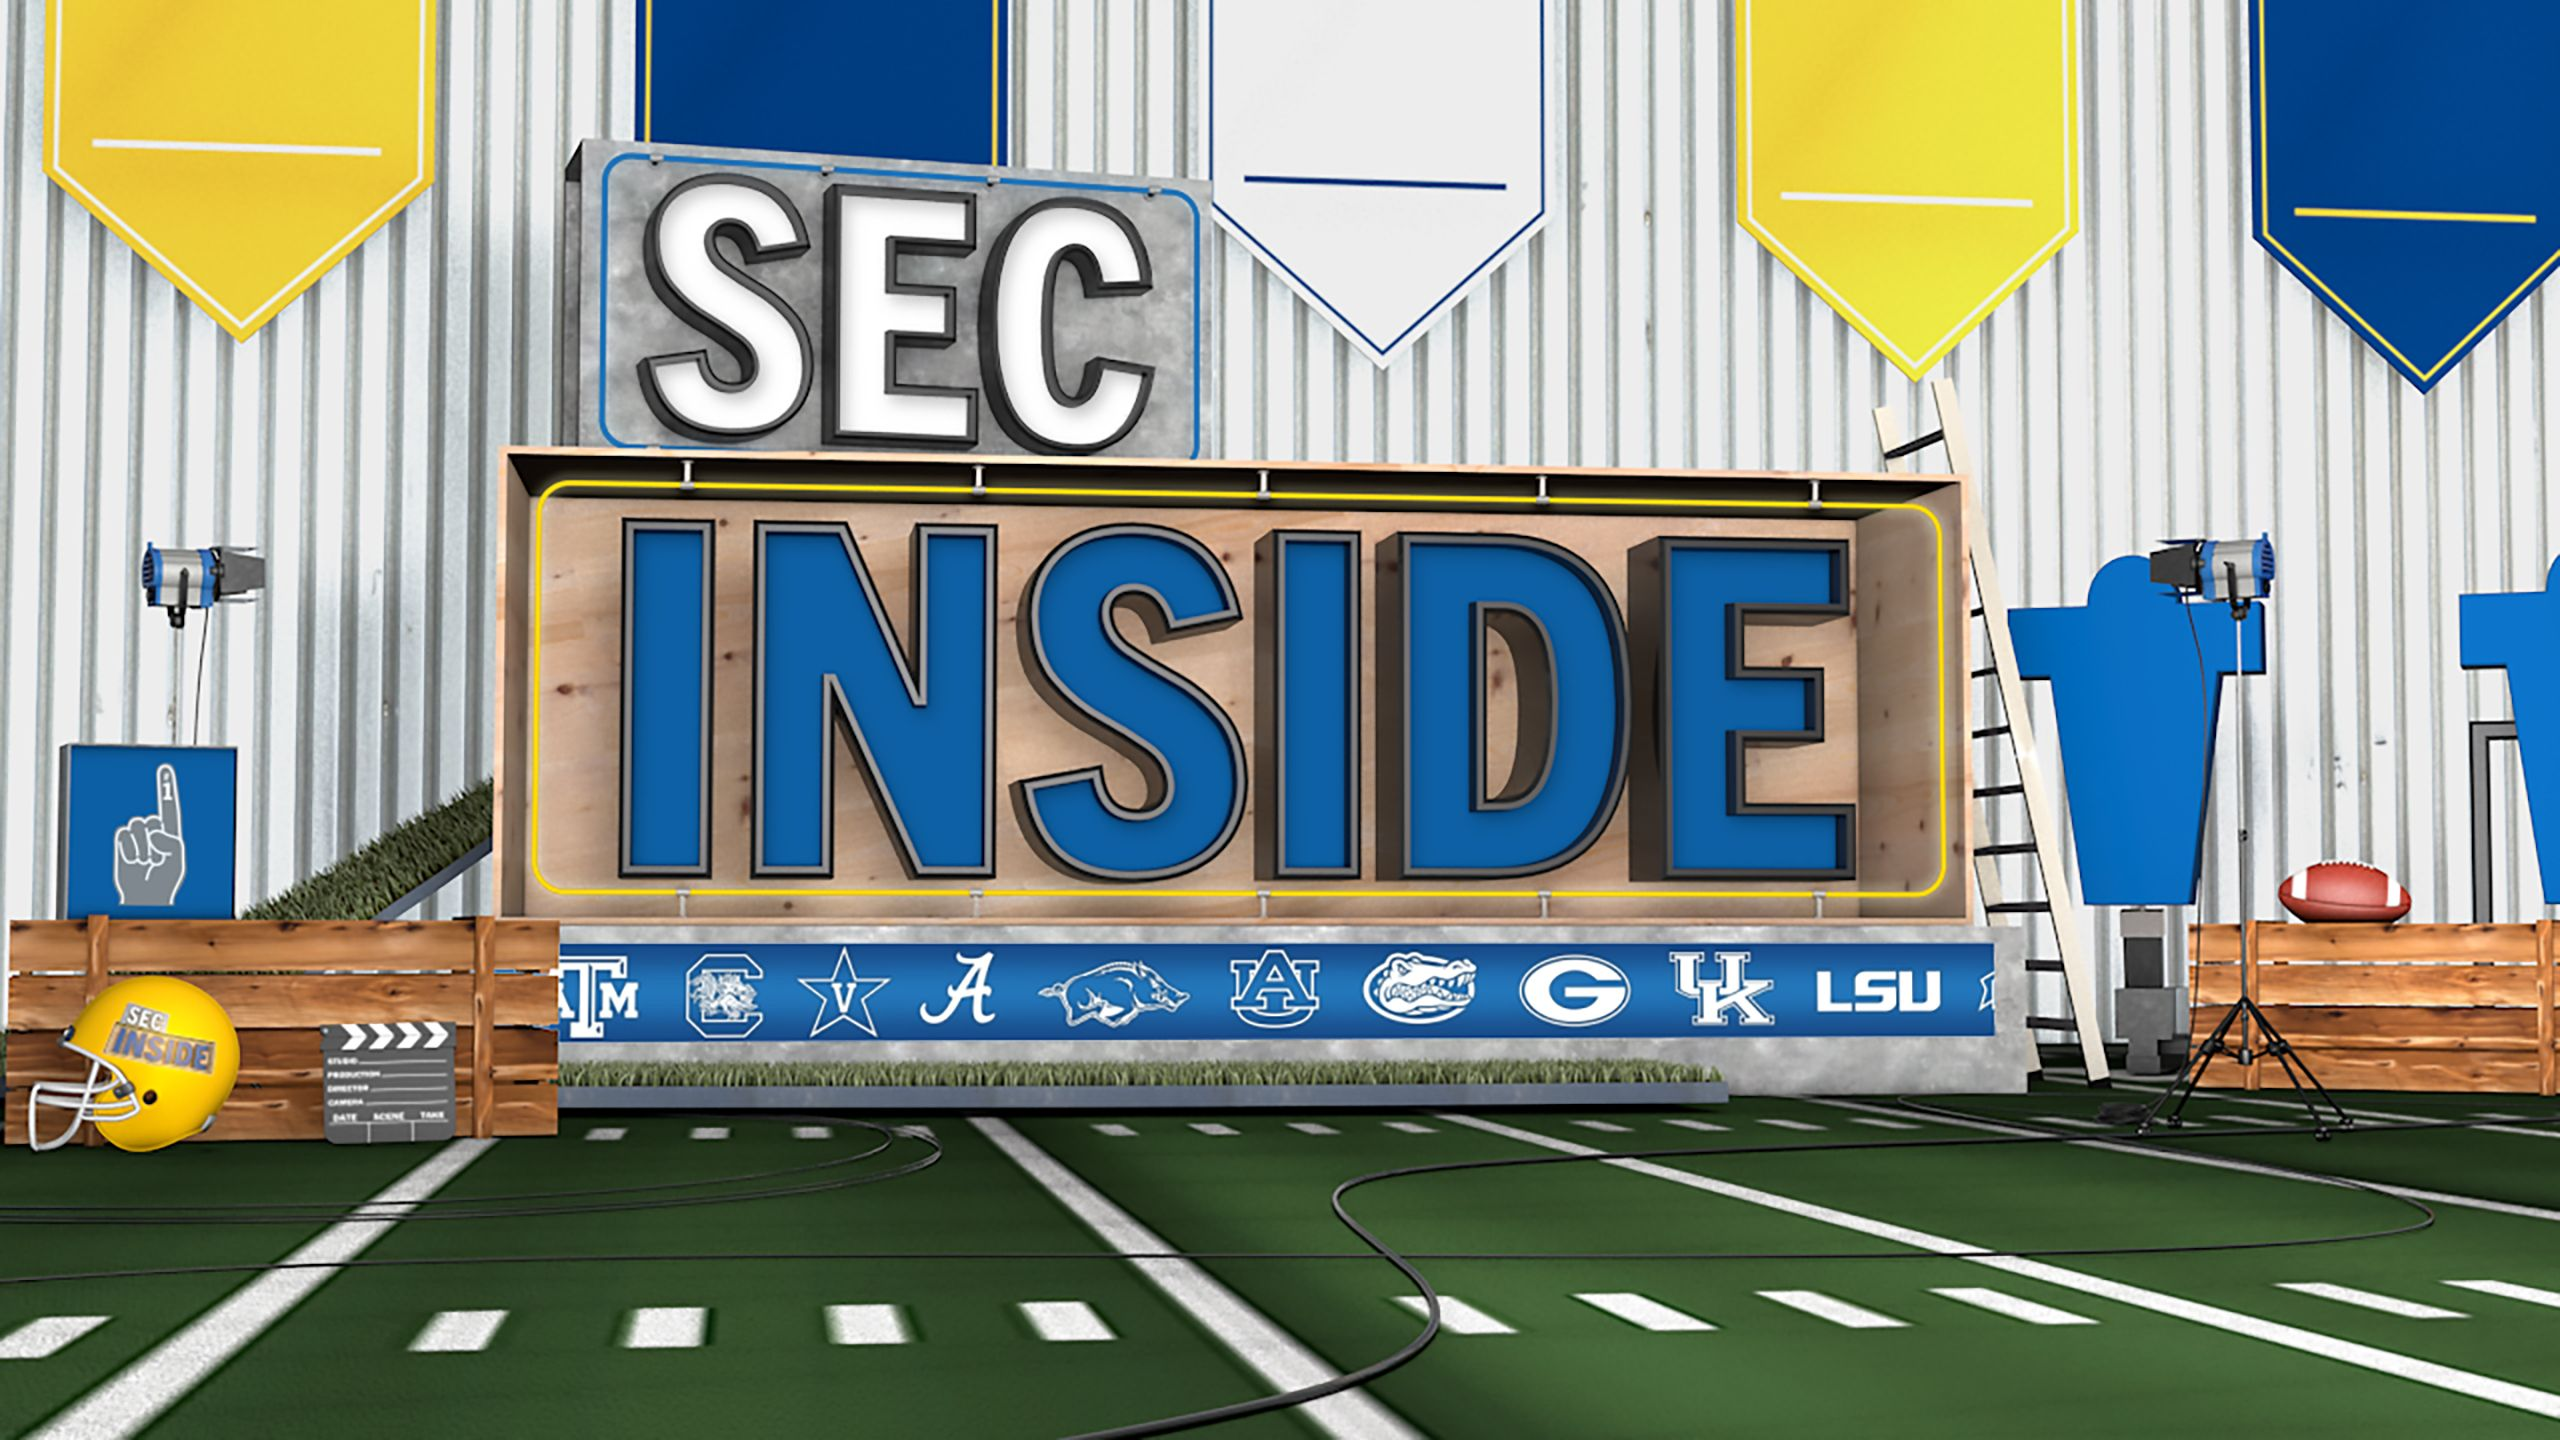 SEC Inside: Texas A&M vs. Ole Miss